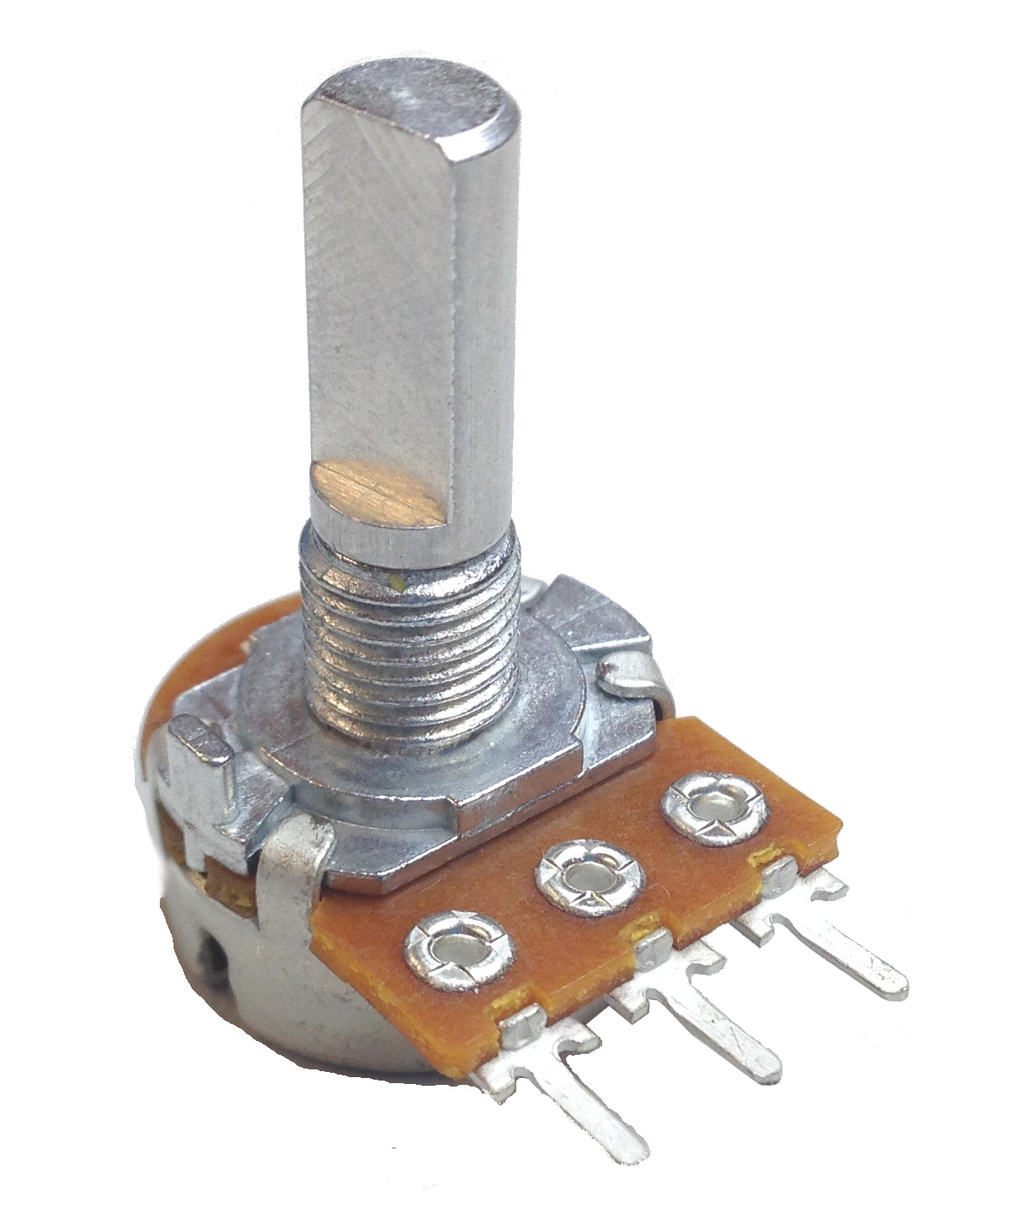 The Potentiometer And Wiring Guide Build Electronic Circuits Which Wires Connect To What On Switch It Makes Sense Me Rotary